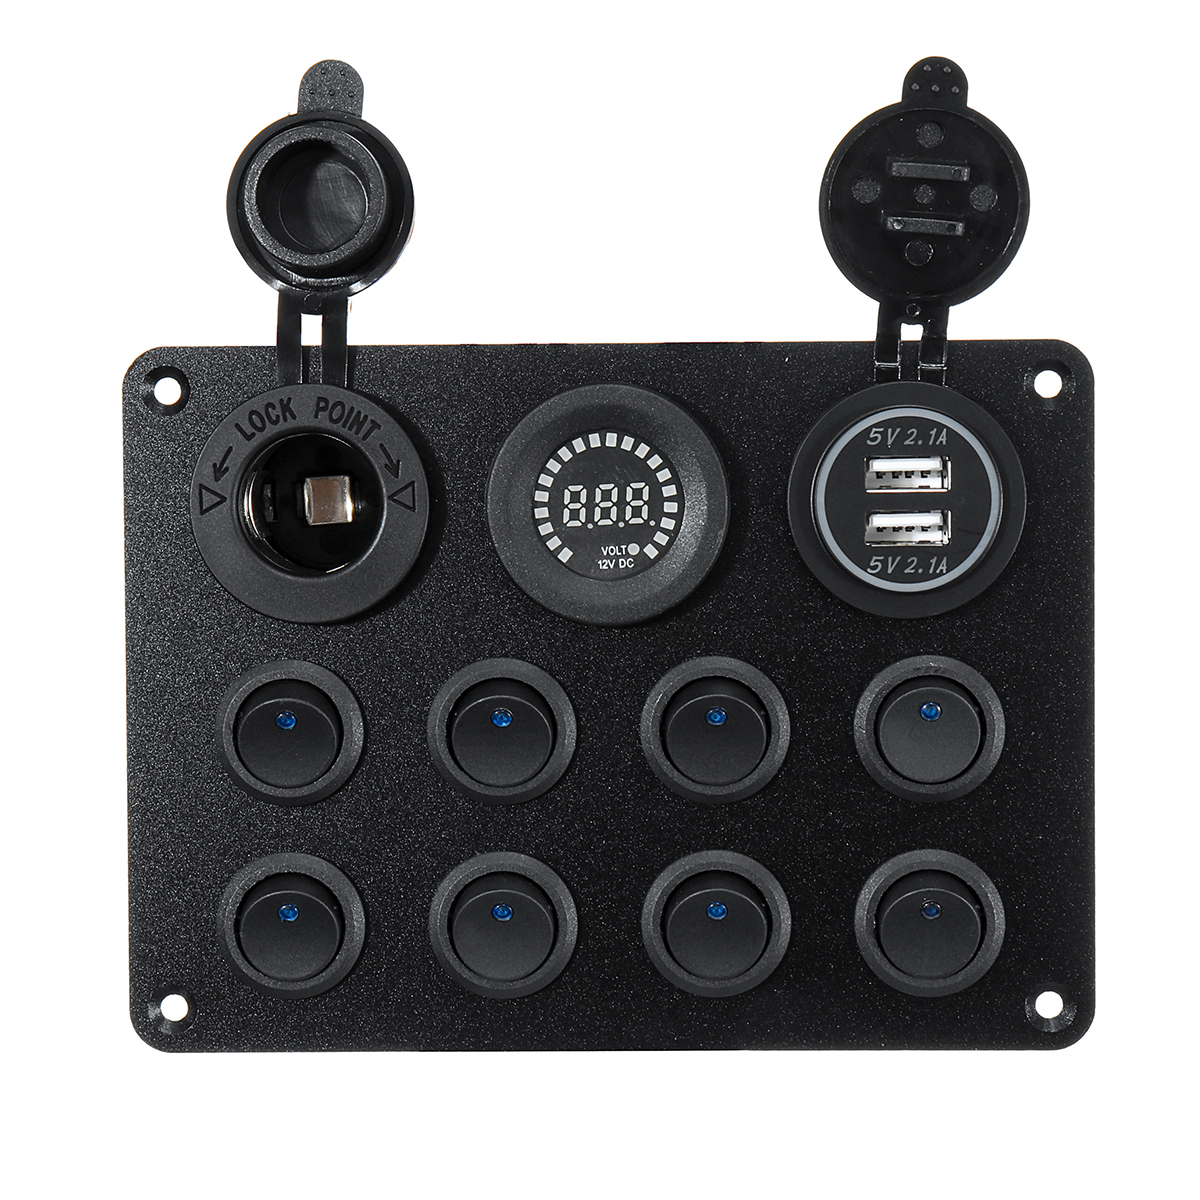 Green LED EBTOOLS Toggle Switch Panel,12-24V 5 Gang On//Off Toggle Switch Panel Dual USB Voltmeter for Car Boat Marine Truck